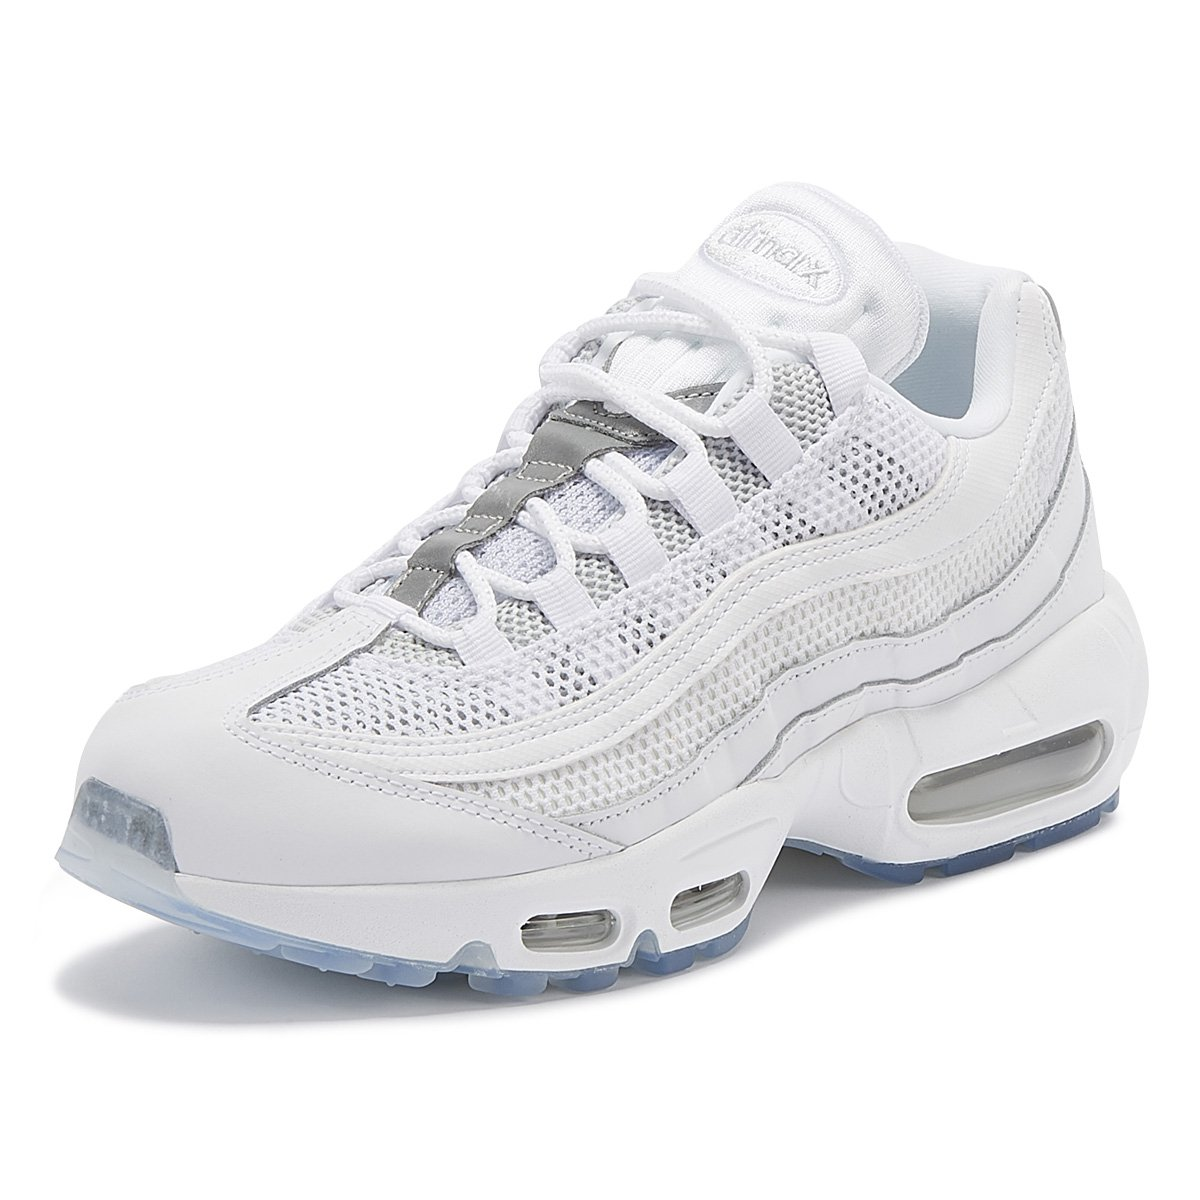 Men's Nike Air Max 95 SE JDI Casual Shoes | Mens nike air